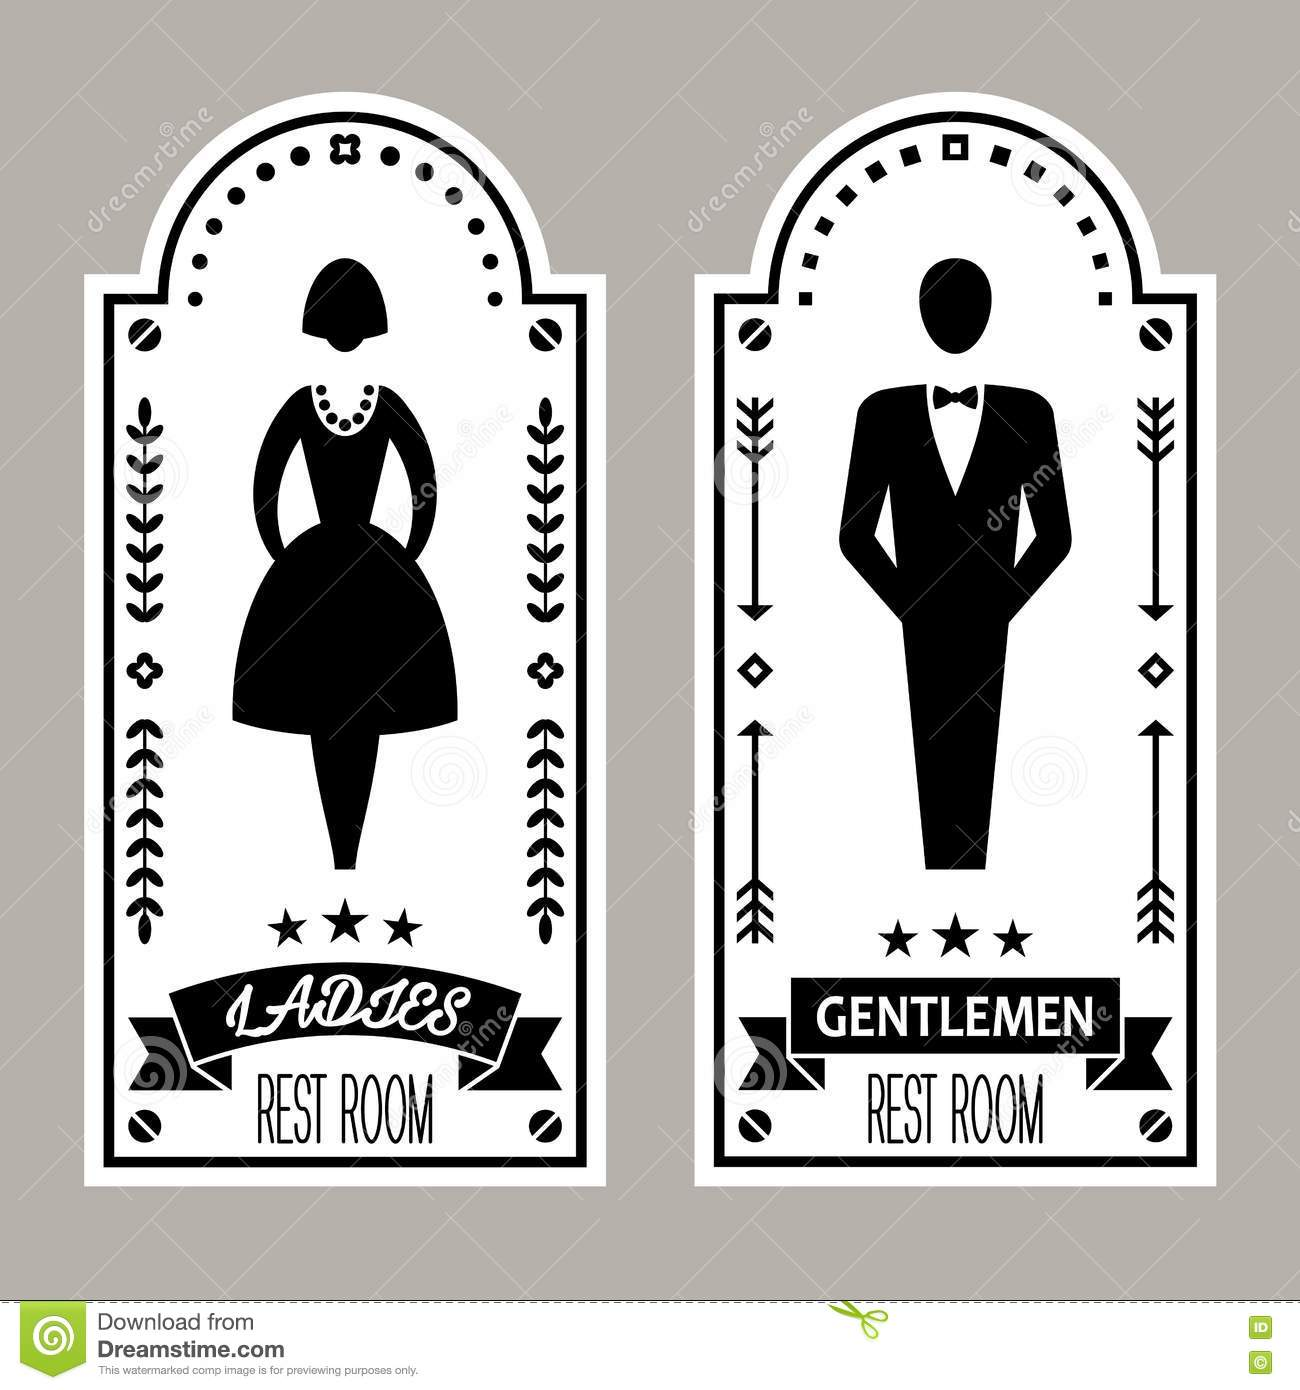 Bathroom Signs Male Female bathroom symbol vector | carpetcleaningvirginia